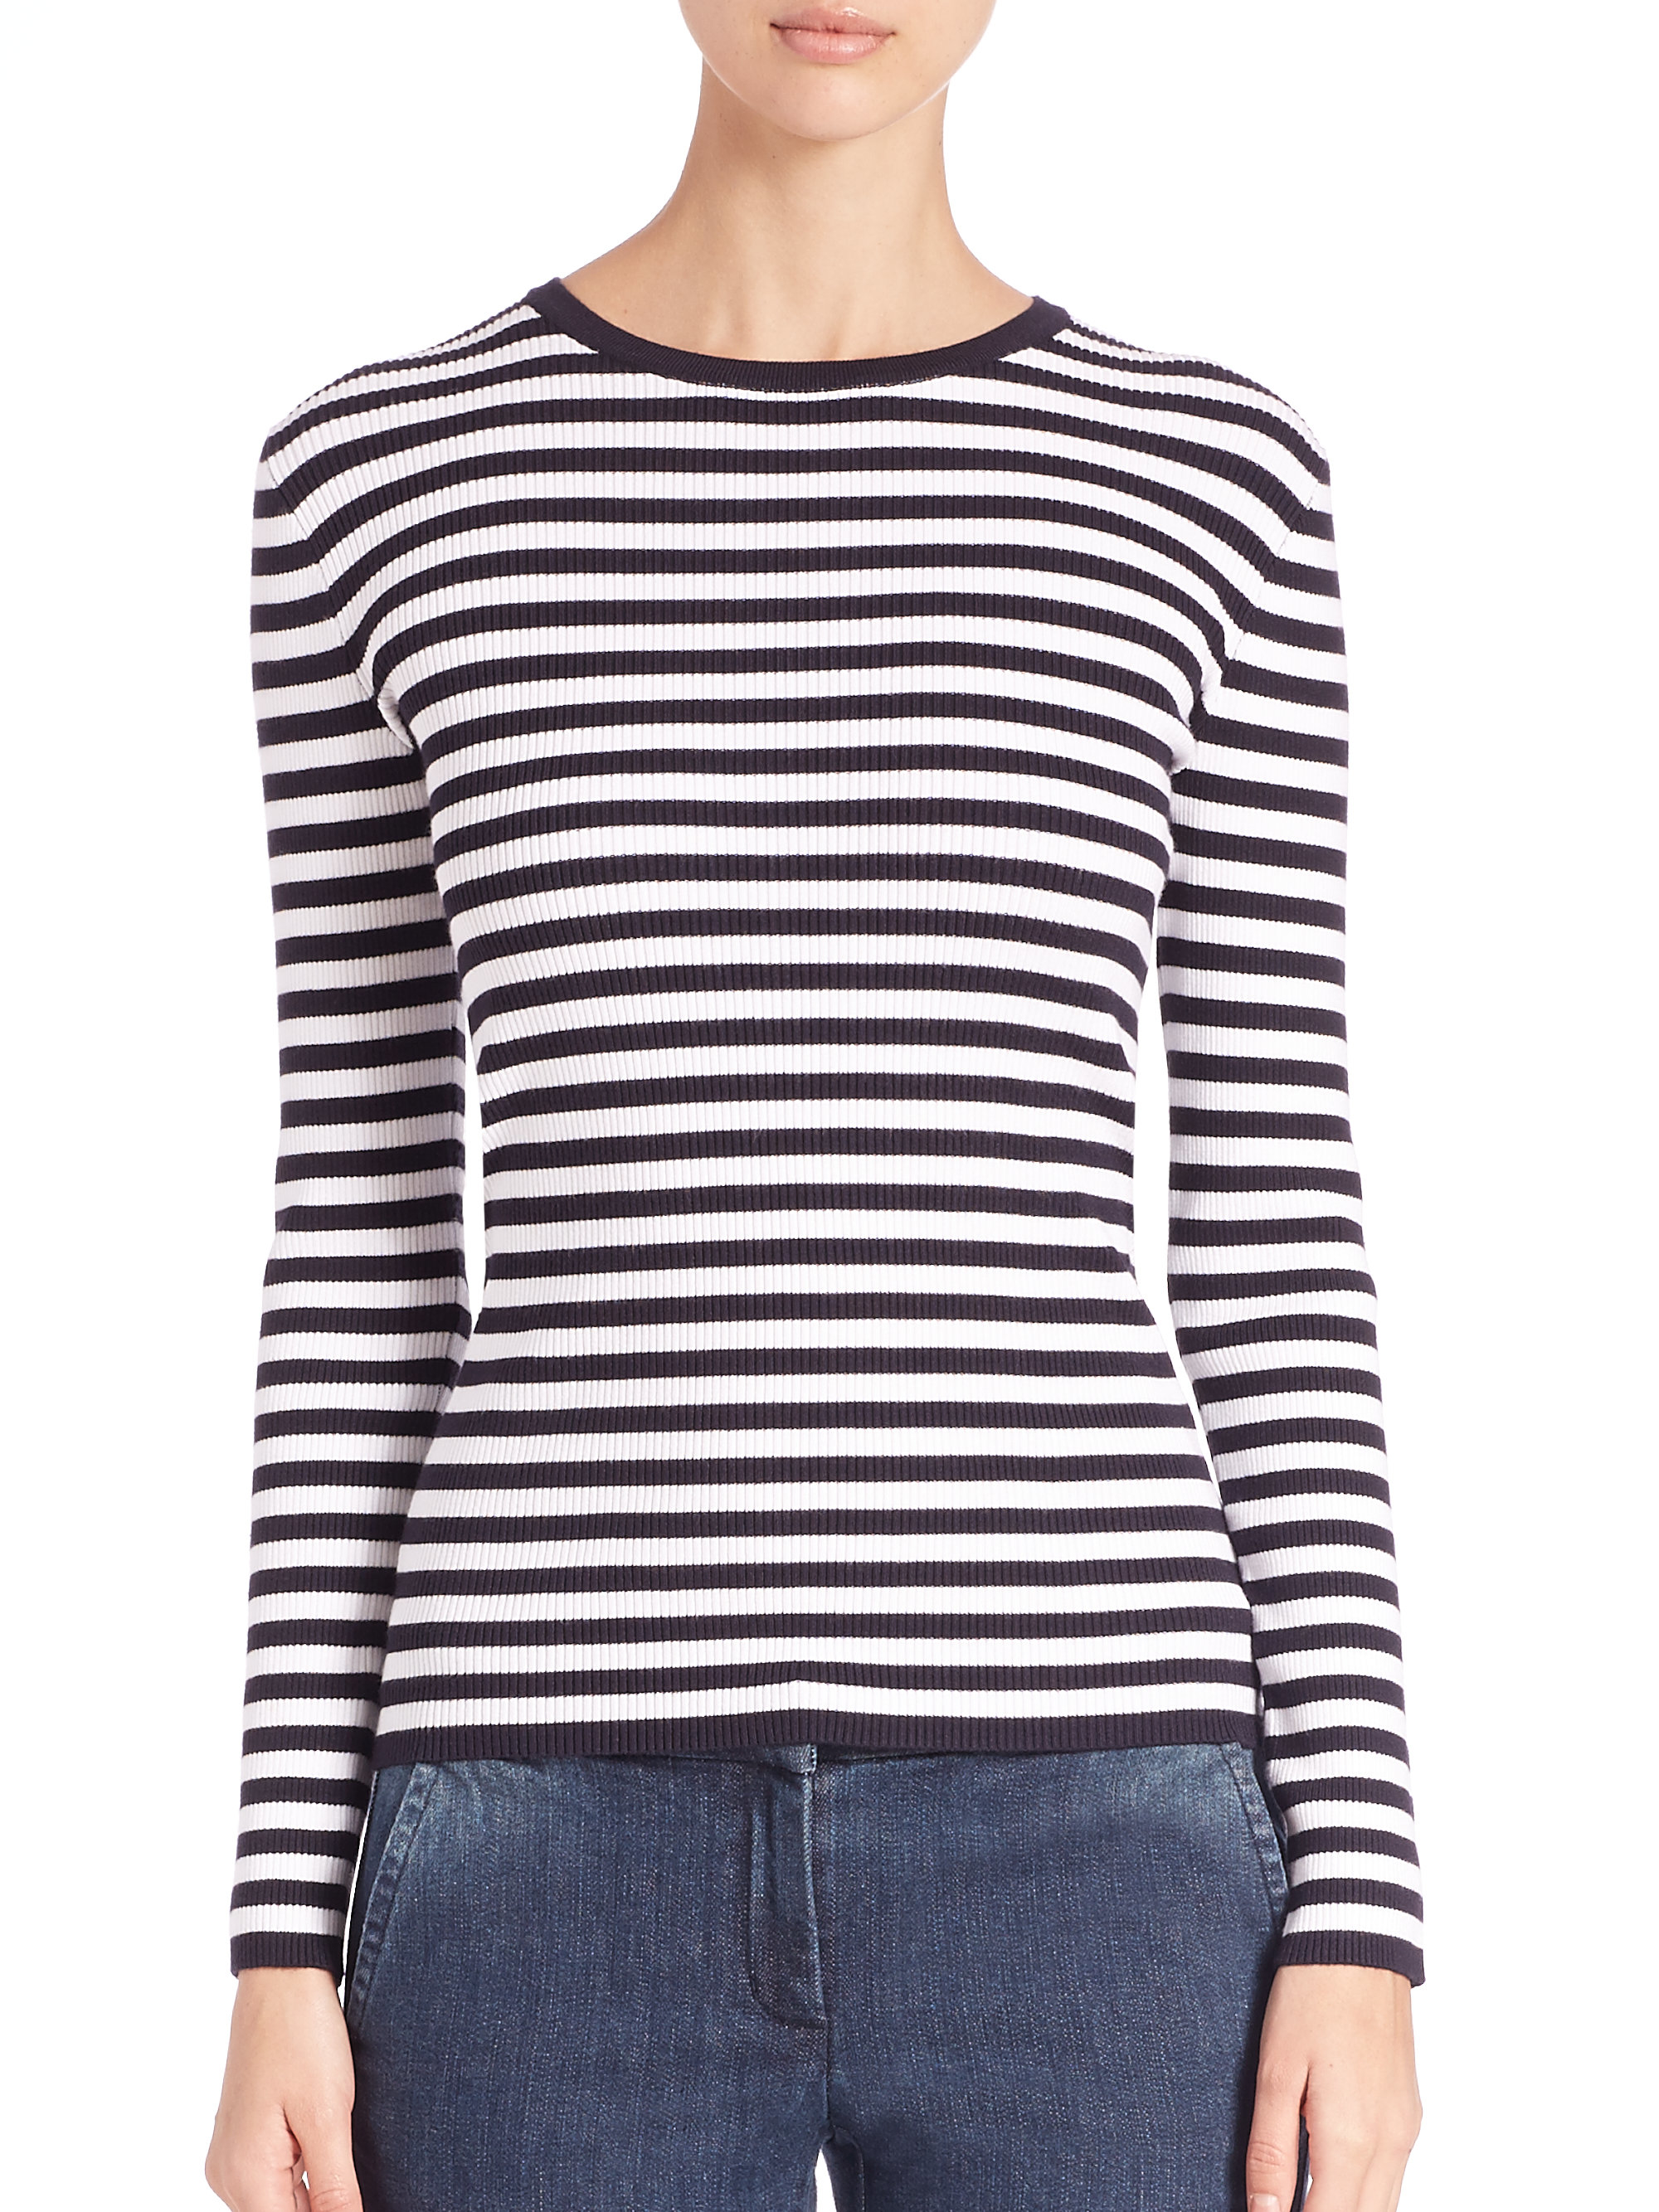 Michael michael kors Striped Ribbed Sweater in Blue | Lyst